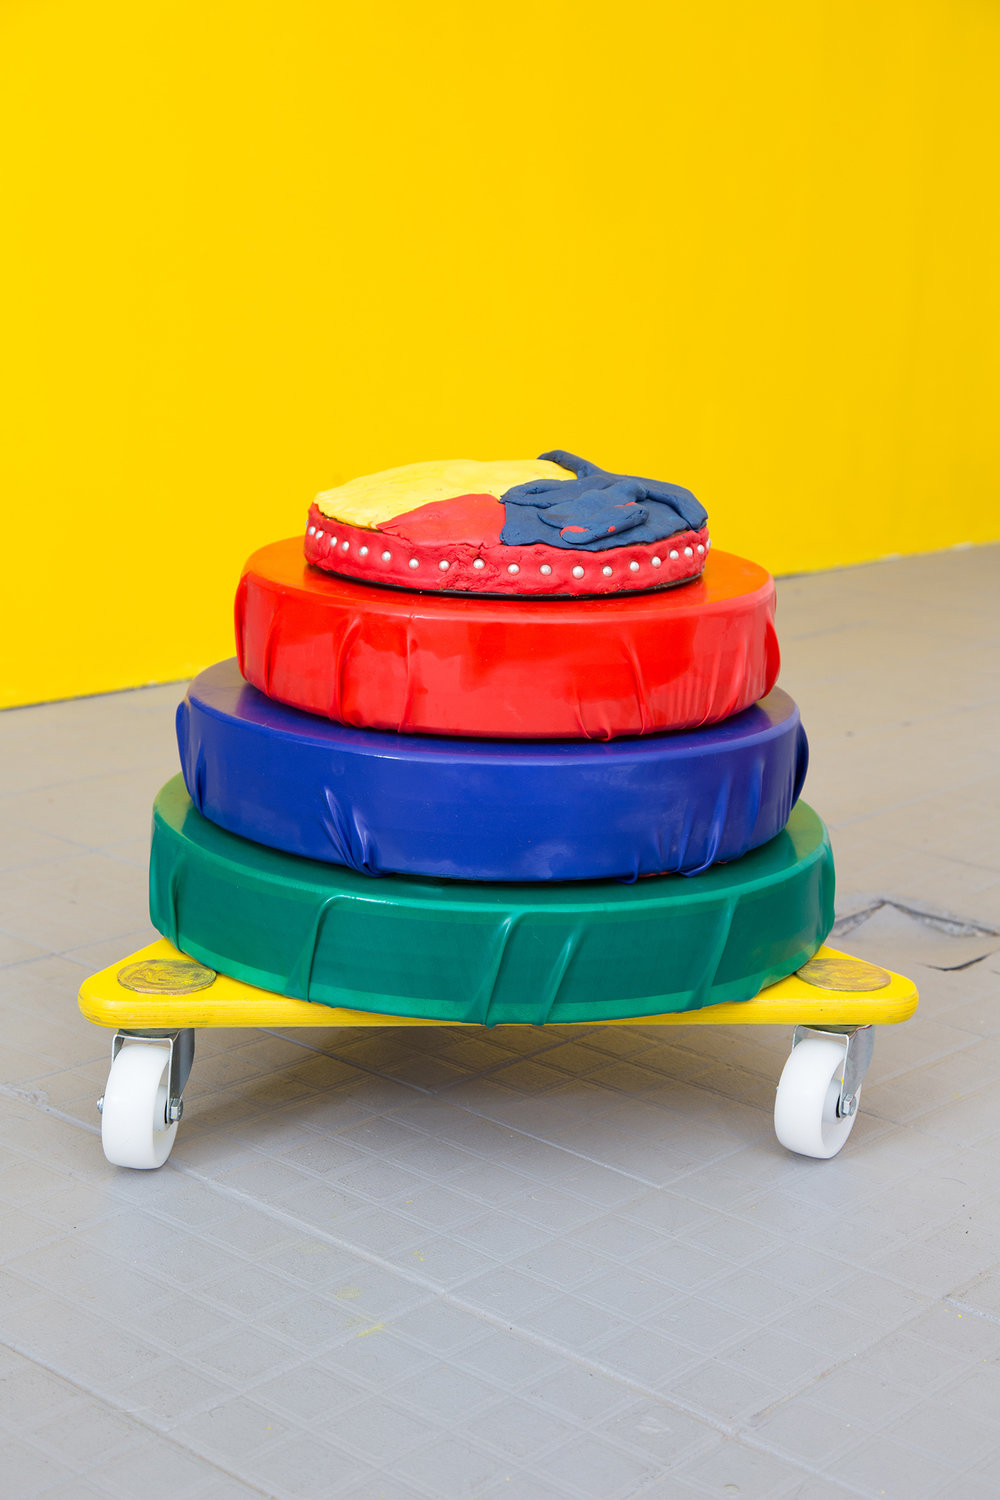 RGB Yellowcake 4/4   Materials: Ocean drums with ball bearings (internal), wooden moving trolley, latex, spray paint, gouache and acrylic paint, vanilla cake, yellow food colouring, silver sugar pearls, fondant     Mobile sculpture dimensions: 1.5 metre x 1 metre